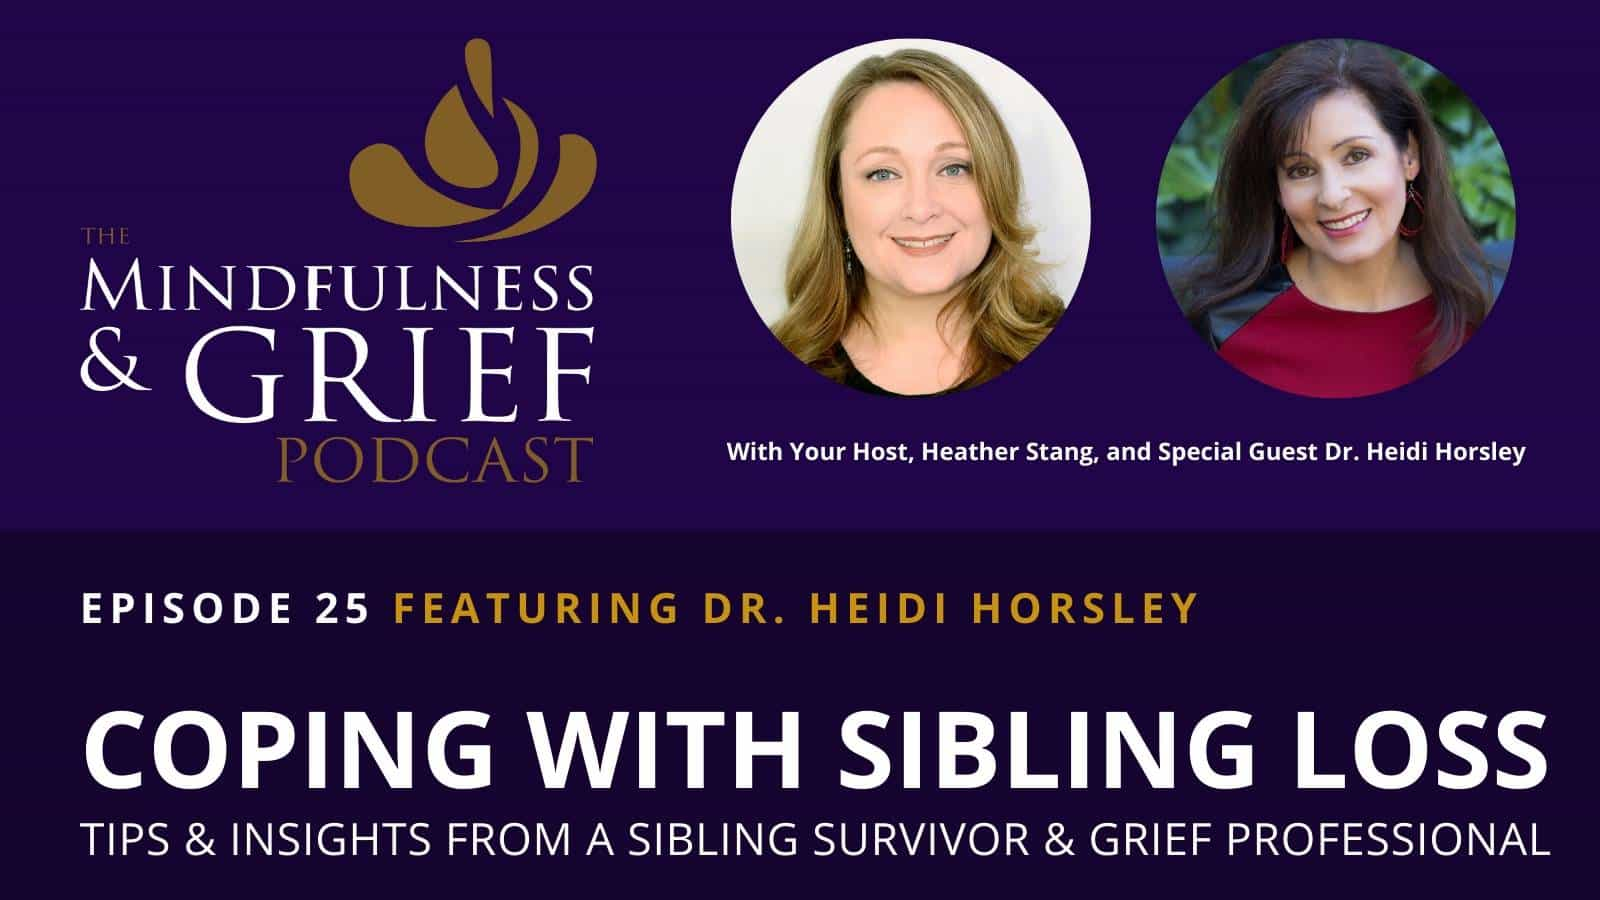 Coping with sibling loss tips and insights